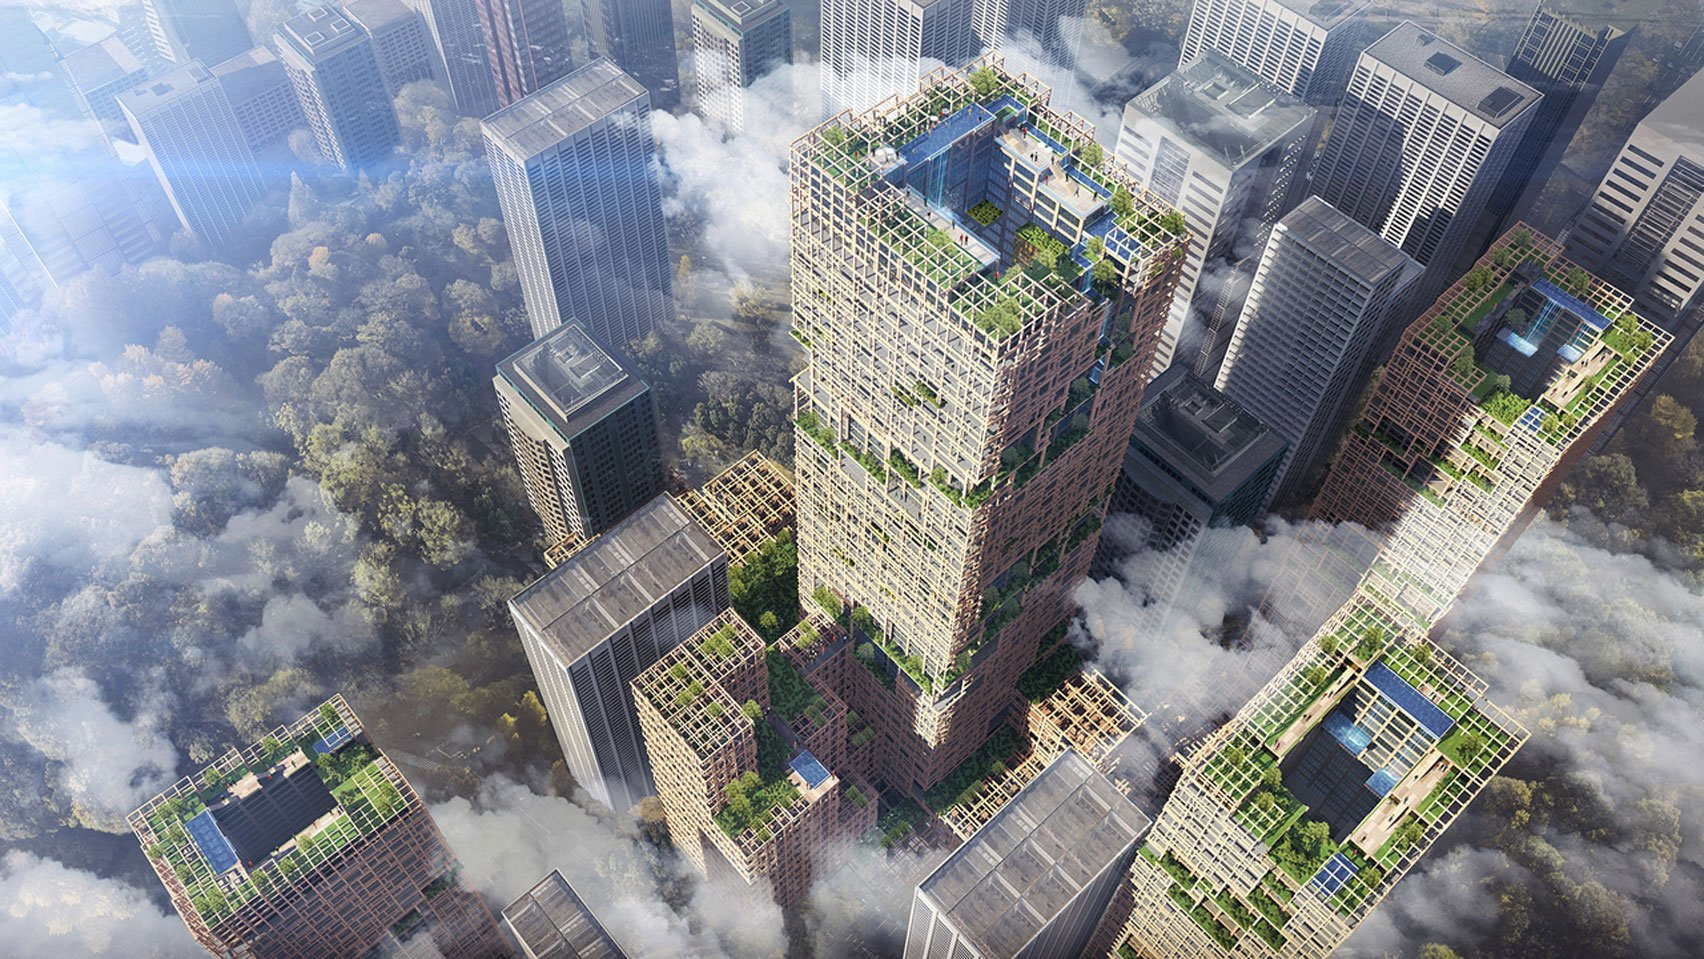 Another ambitious project is the first wooden skyscraper.